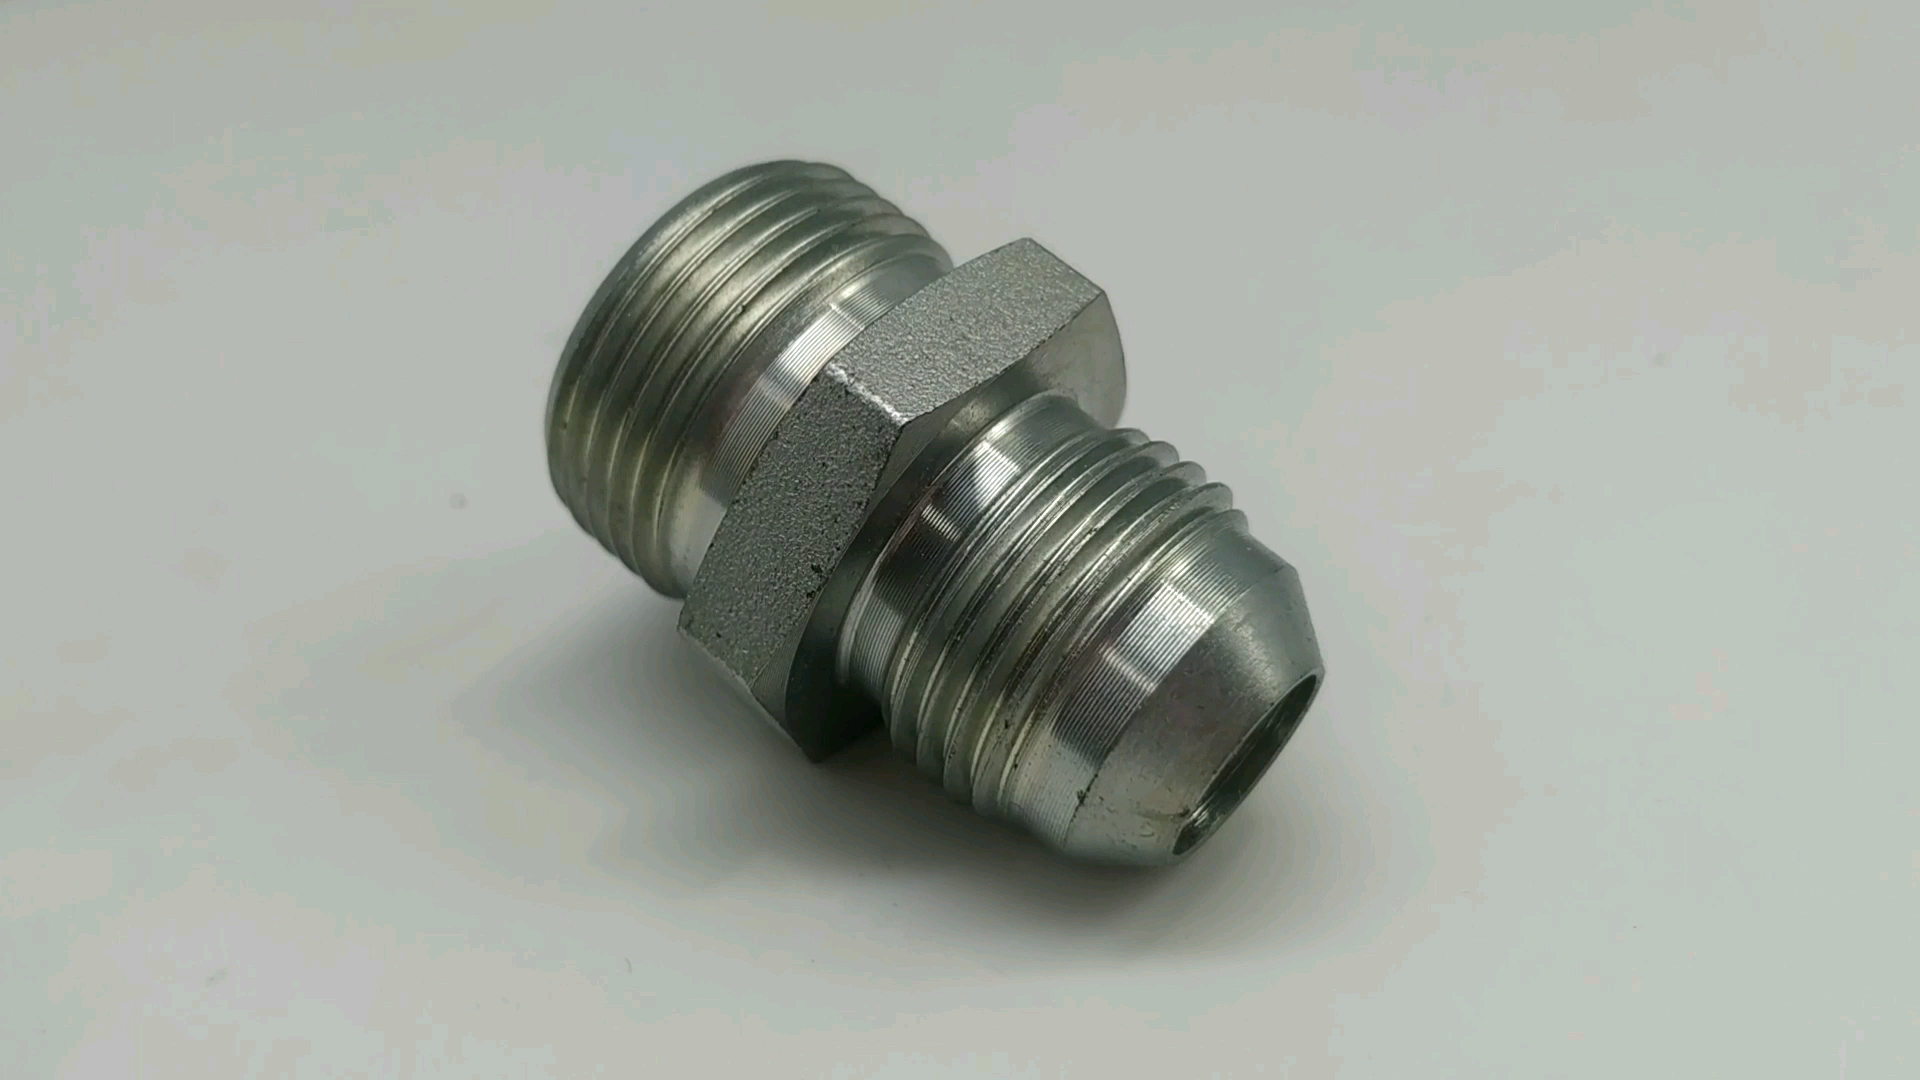 Stainless Steel / Carbon Steel / Brass Male JIC Tube Adaptor Fitting